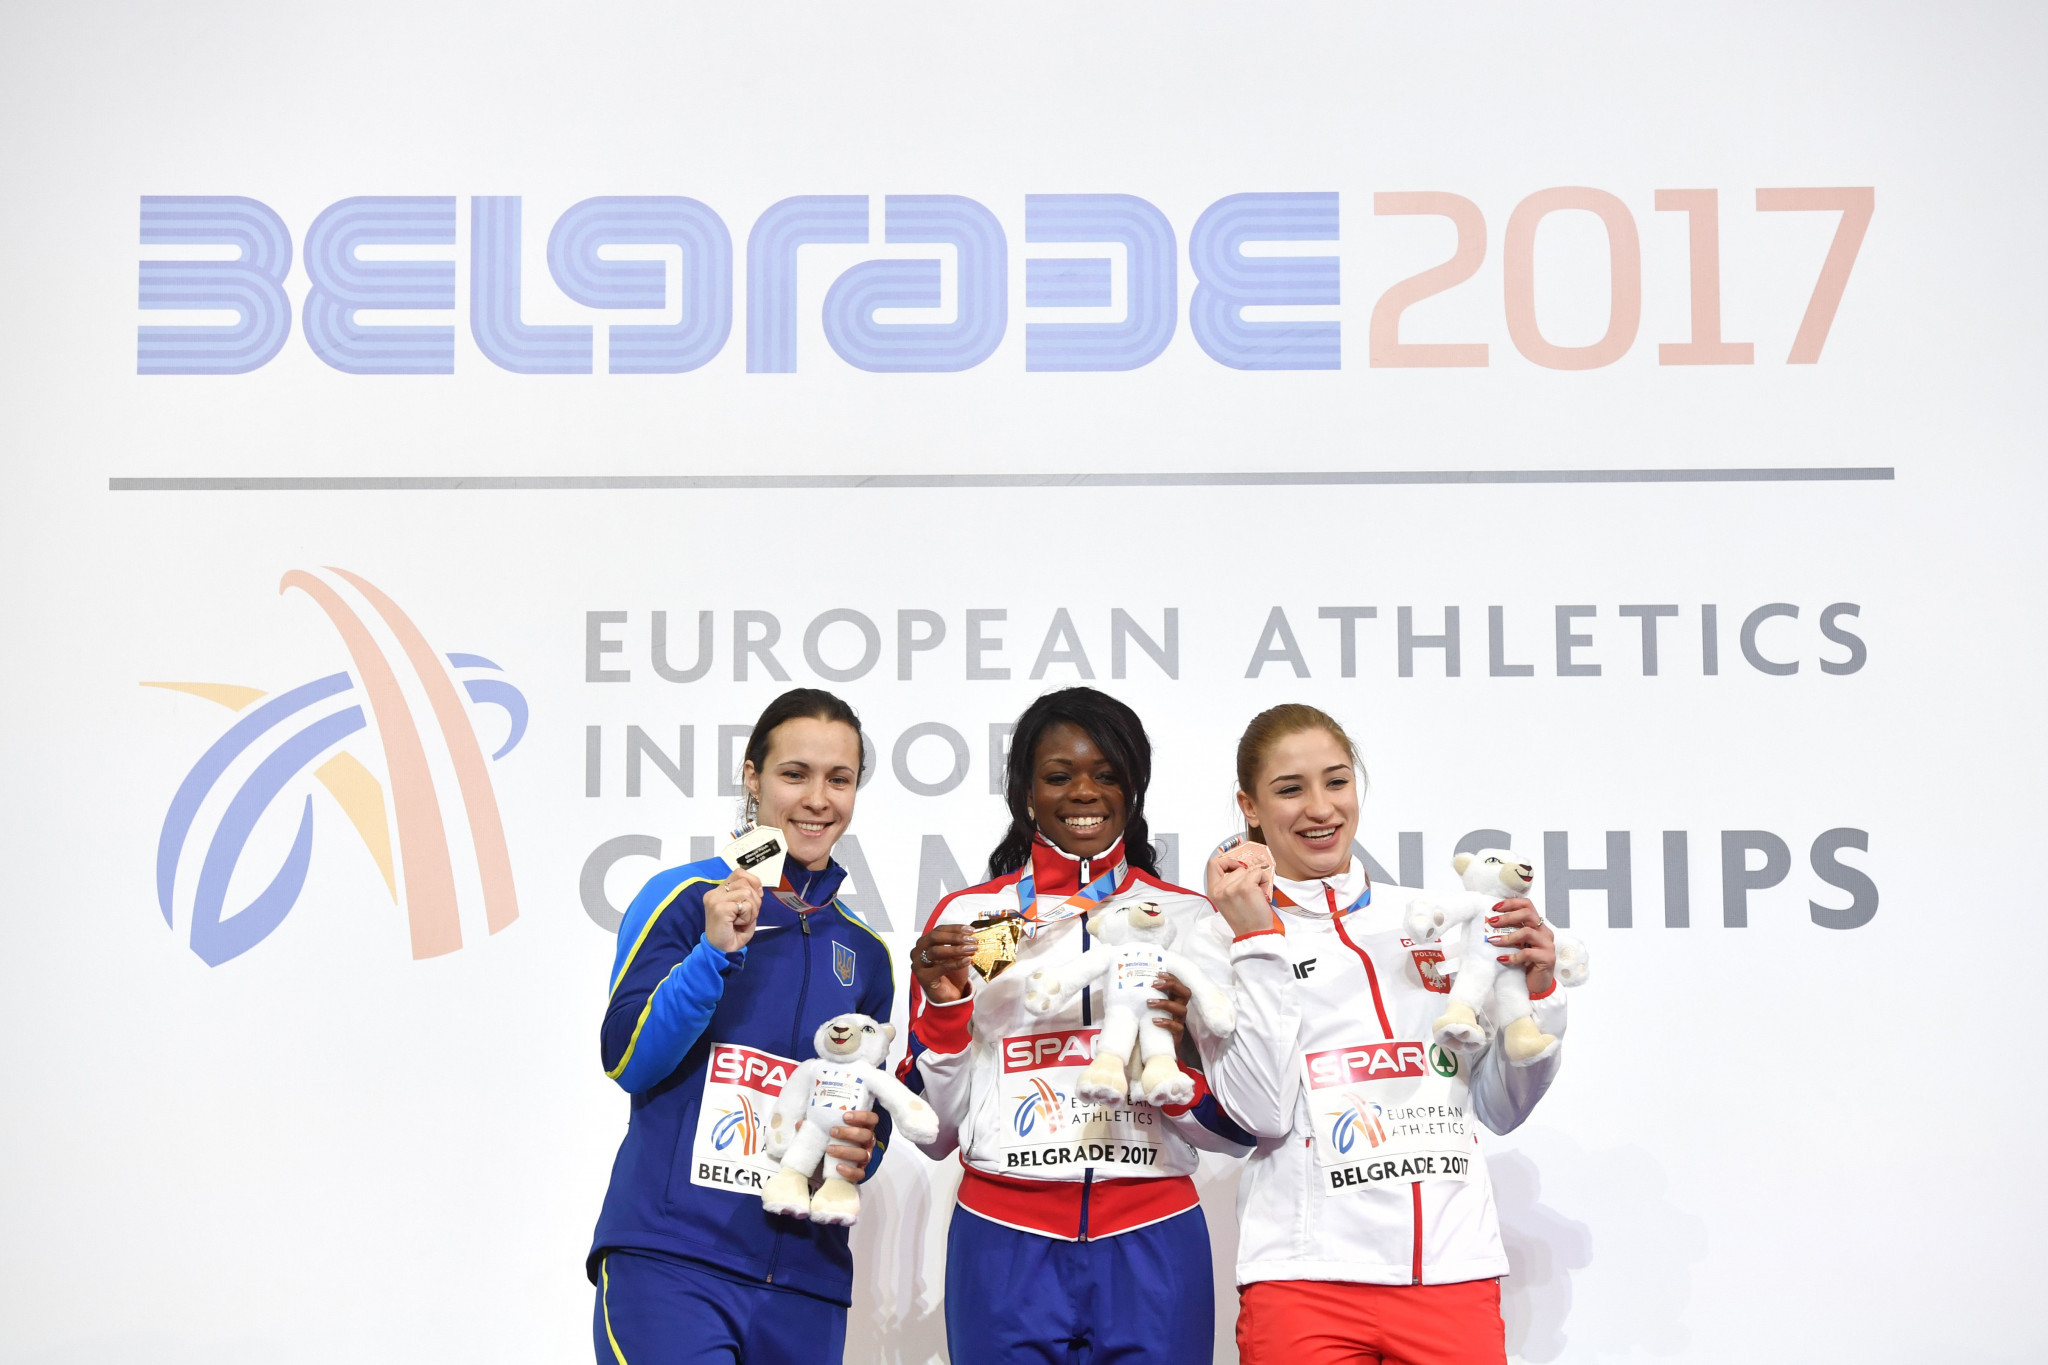 Ukraine's Olesya Povkh, left, is set to be ripped of the silver medal she won in the 60m at the European Indoor Championships in Belgrade last year following a positive drugs test and subsequent four-year ban ©Getty Images